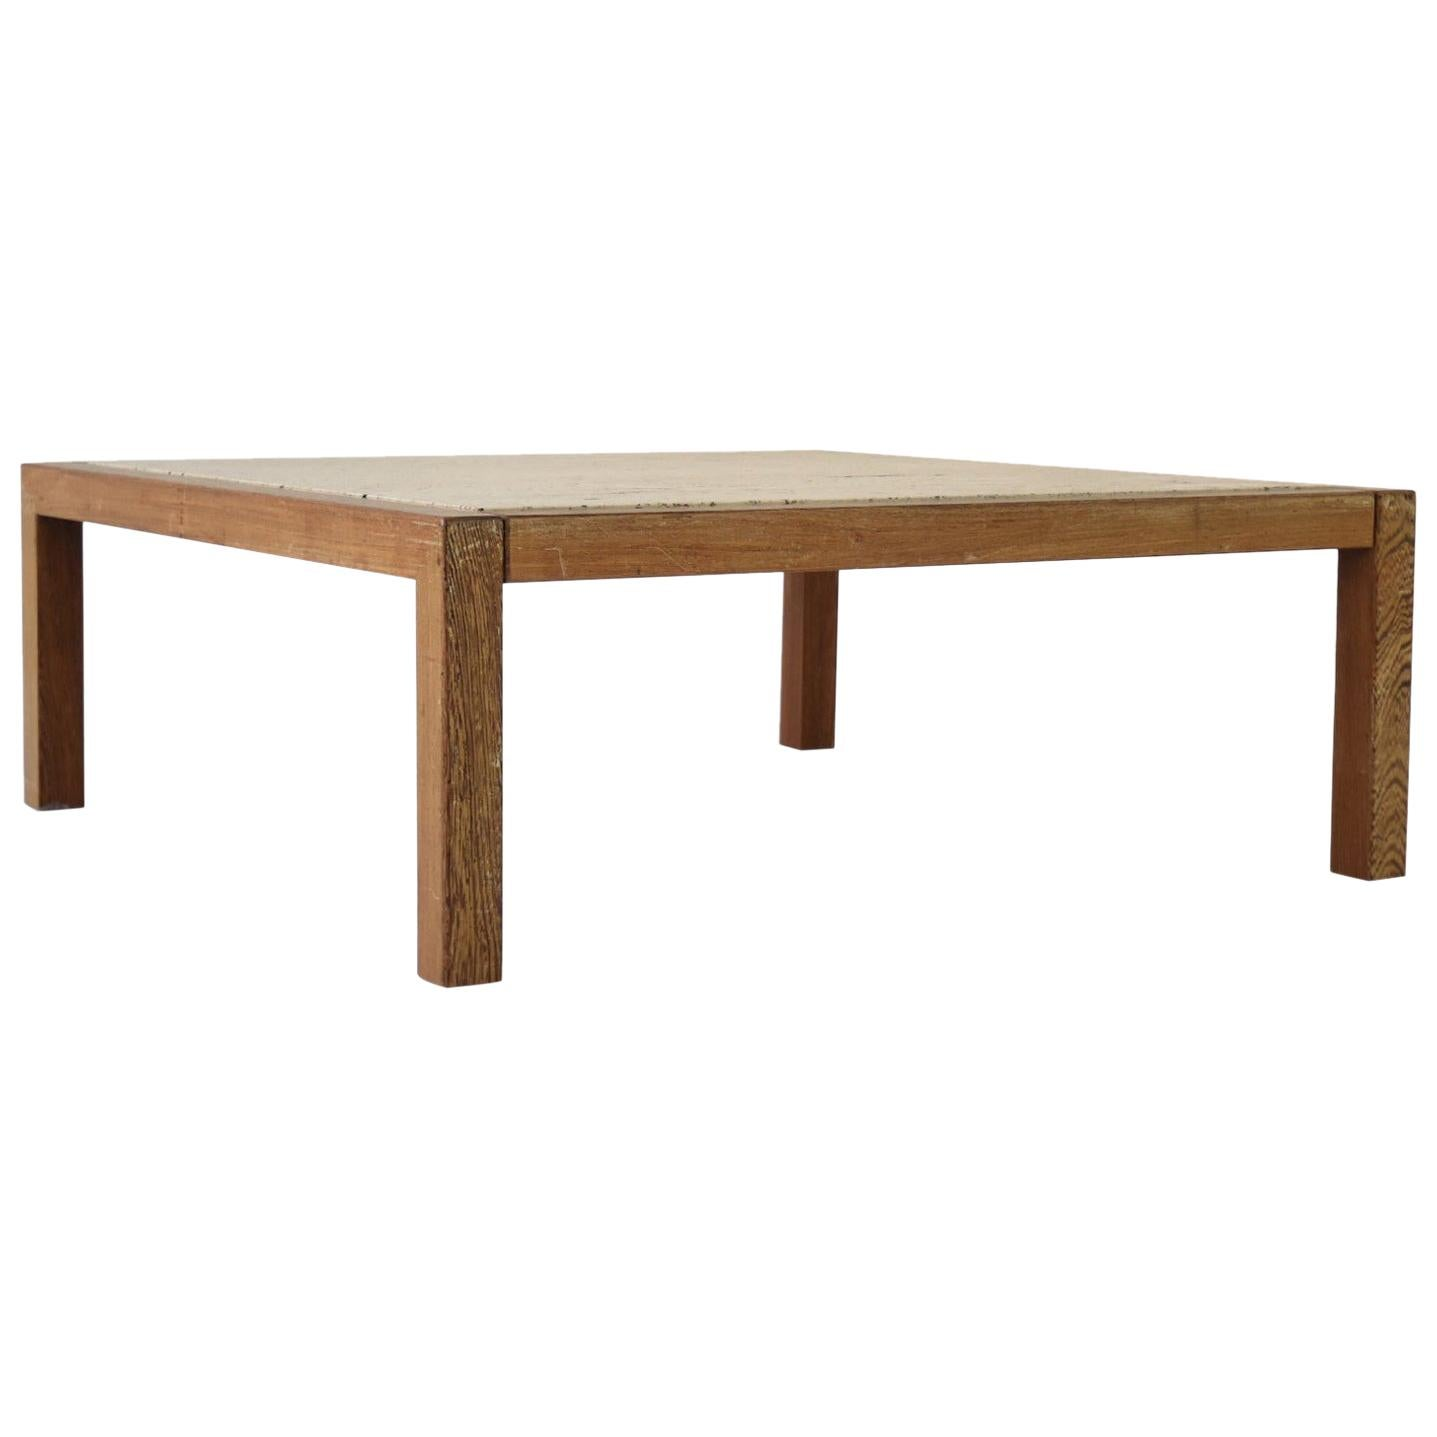 Travertine and Wenge Coffee Table from Belgium, 1950s